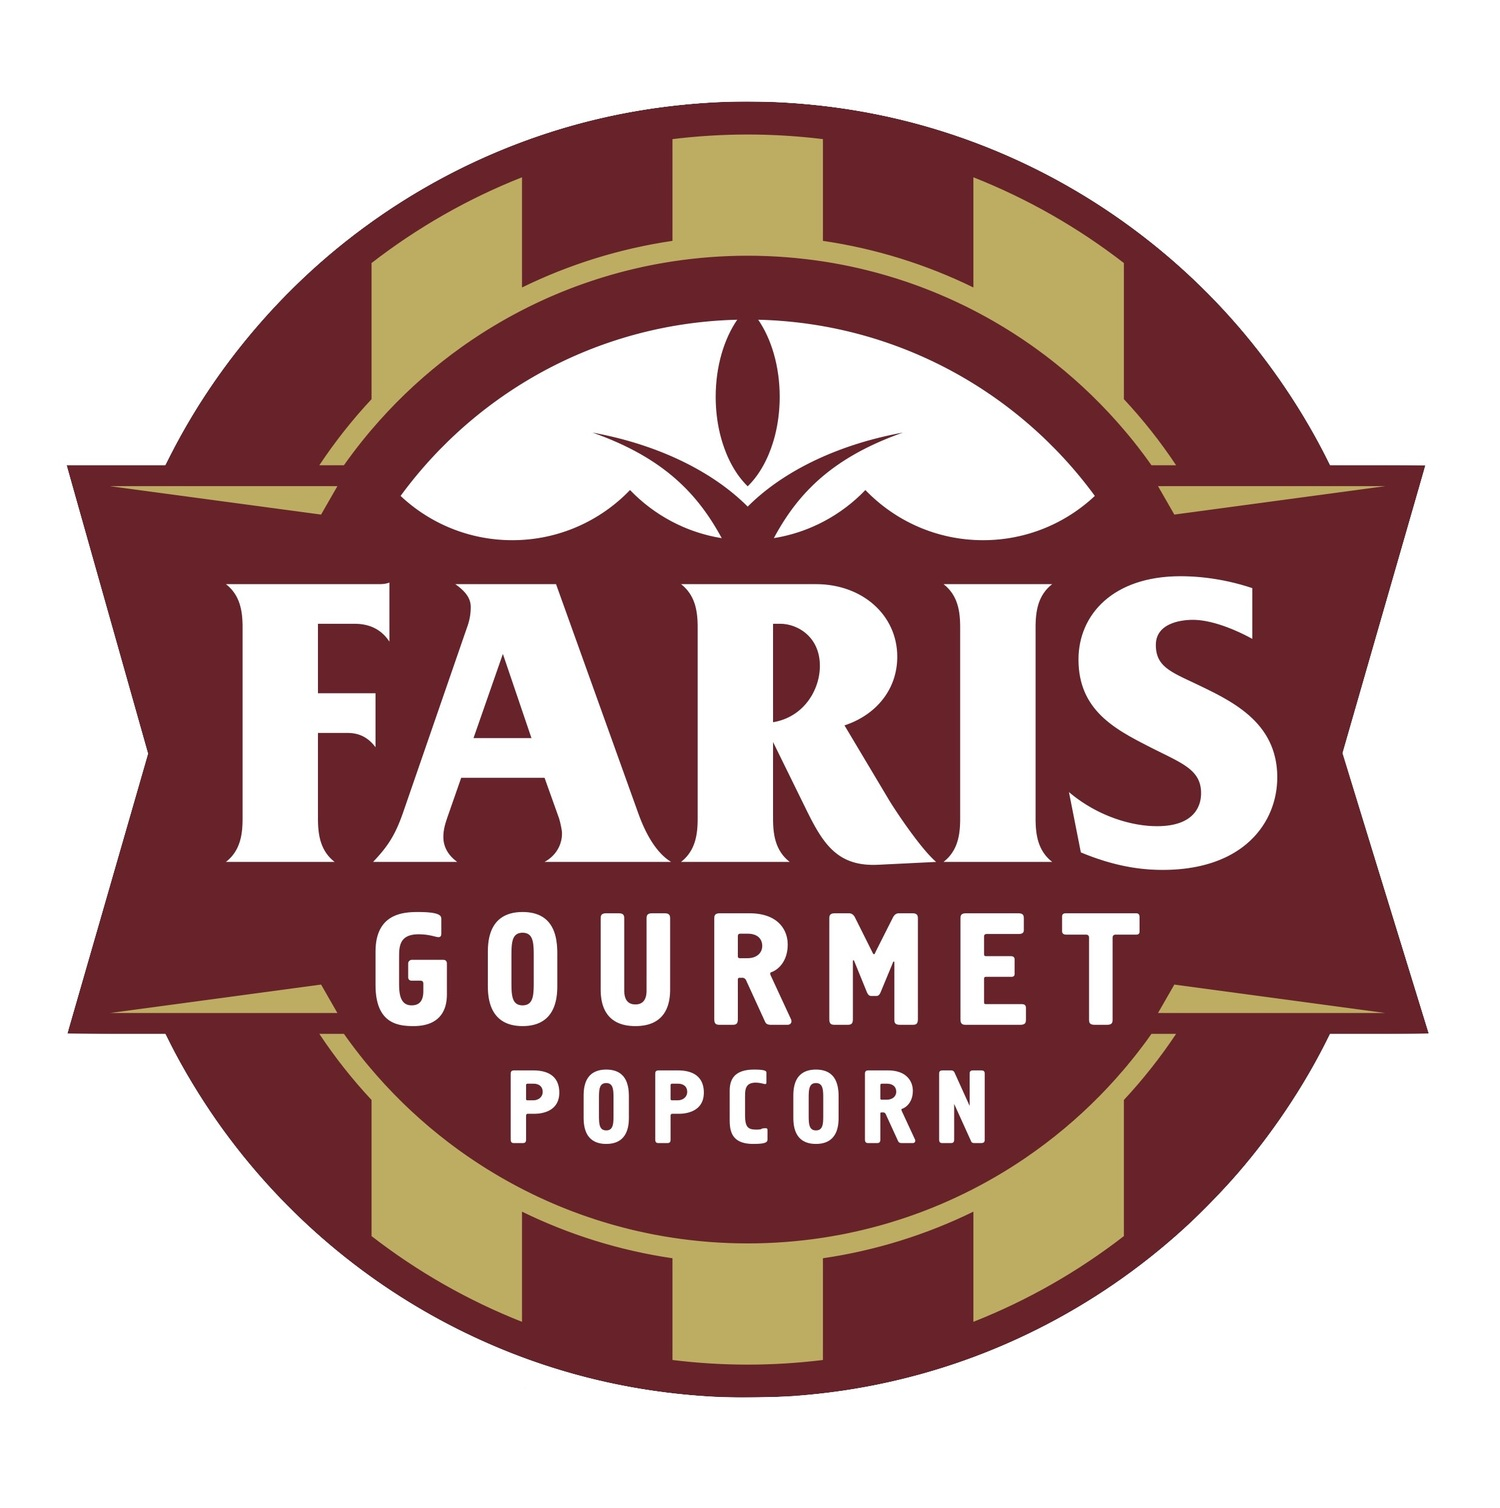 Weddings & More! — Faris Gourmet Popcorn